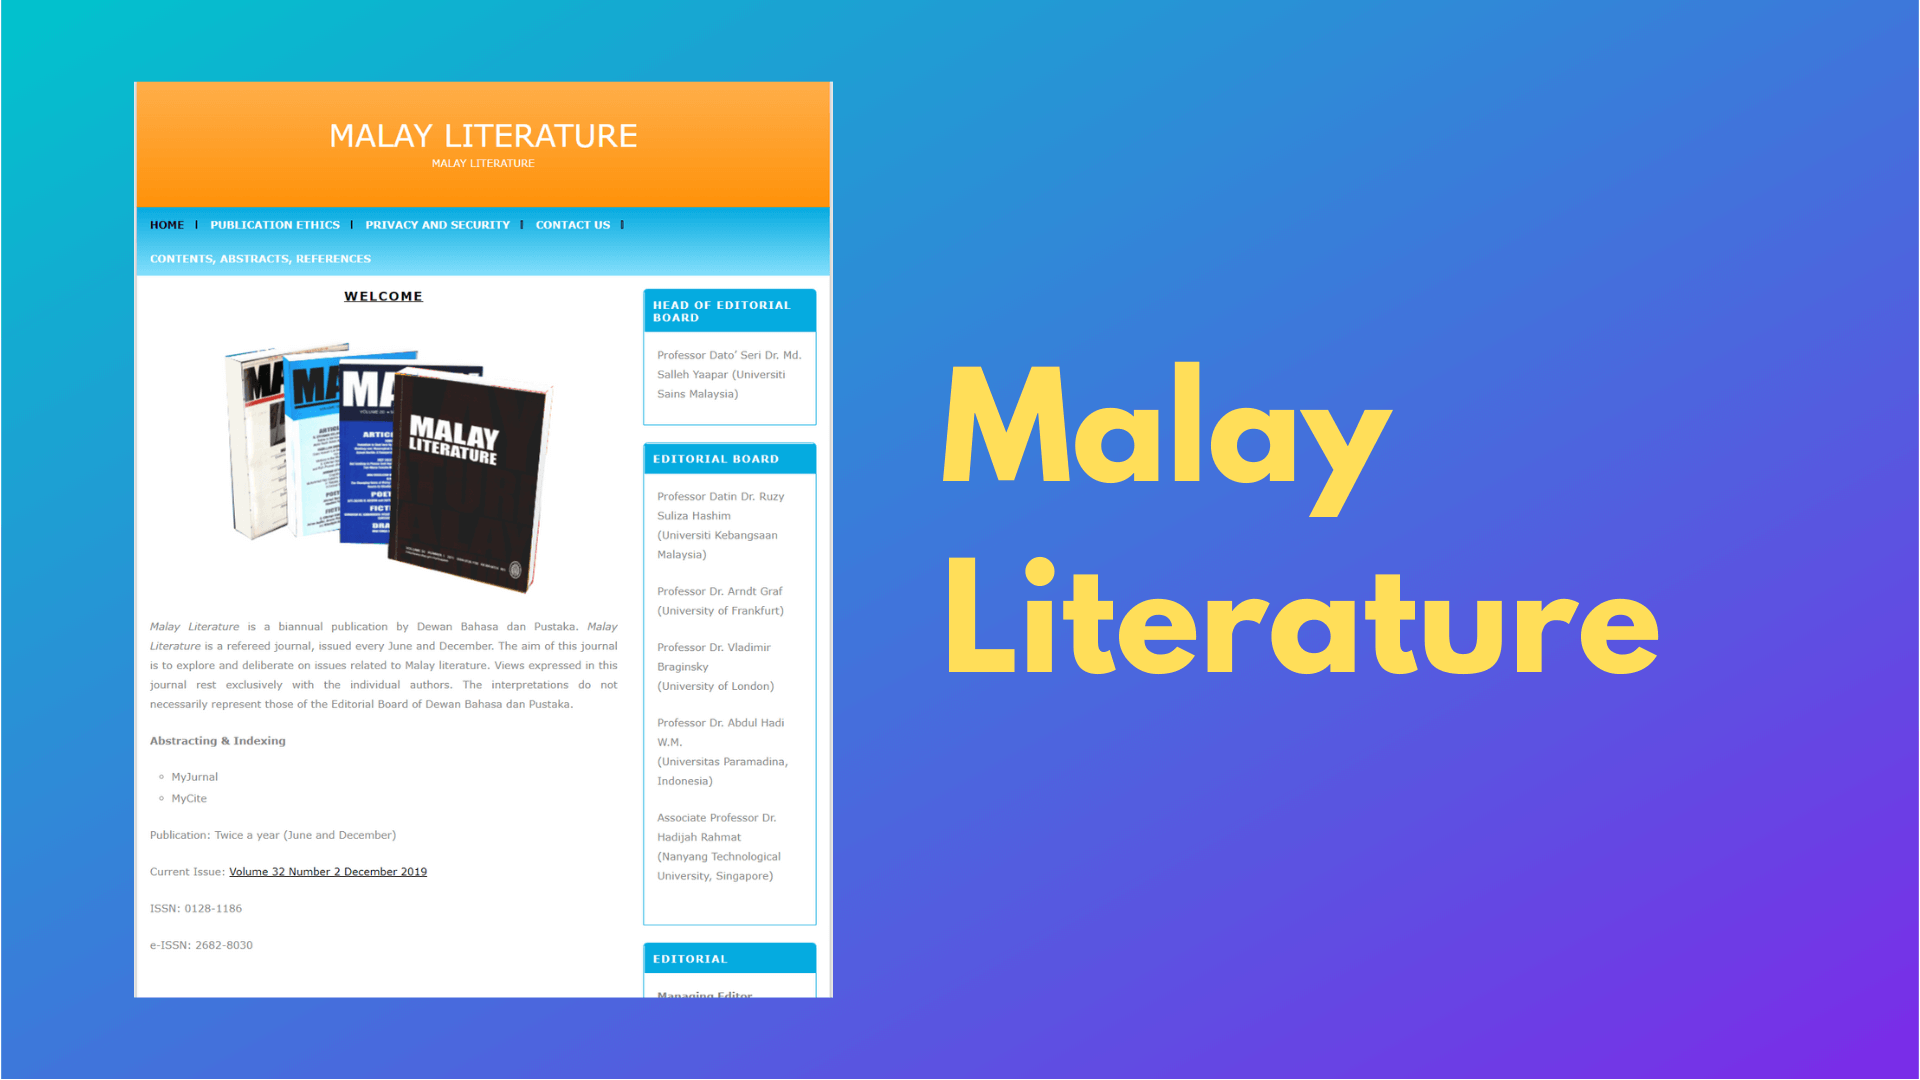 Malay Literature DBP